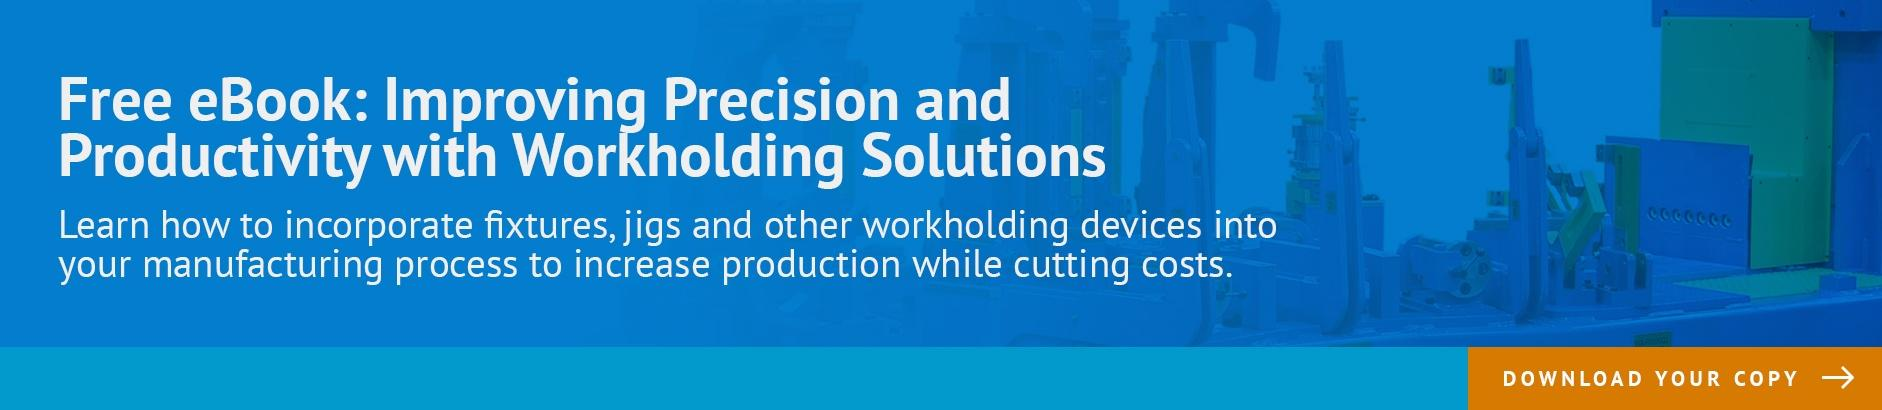 Fixtures and Workholding Solutions